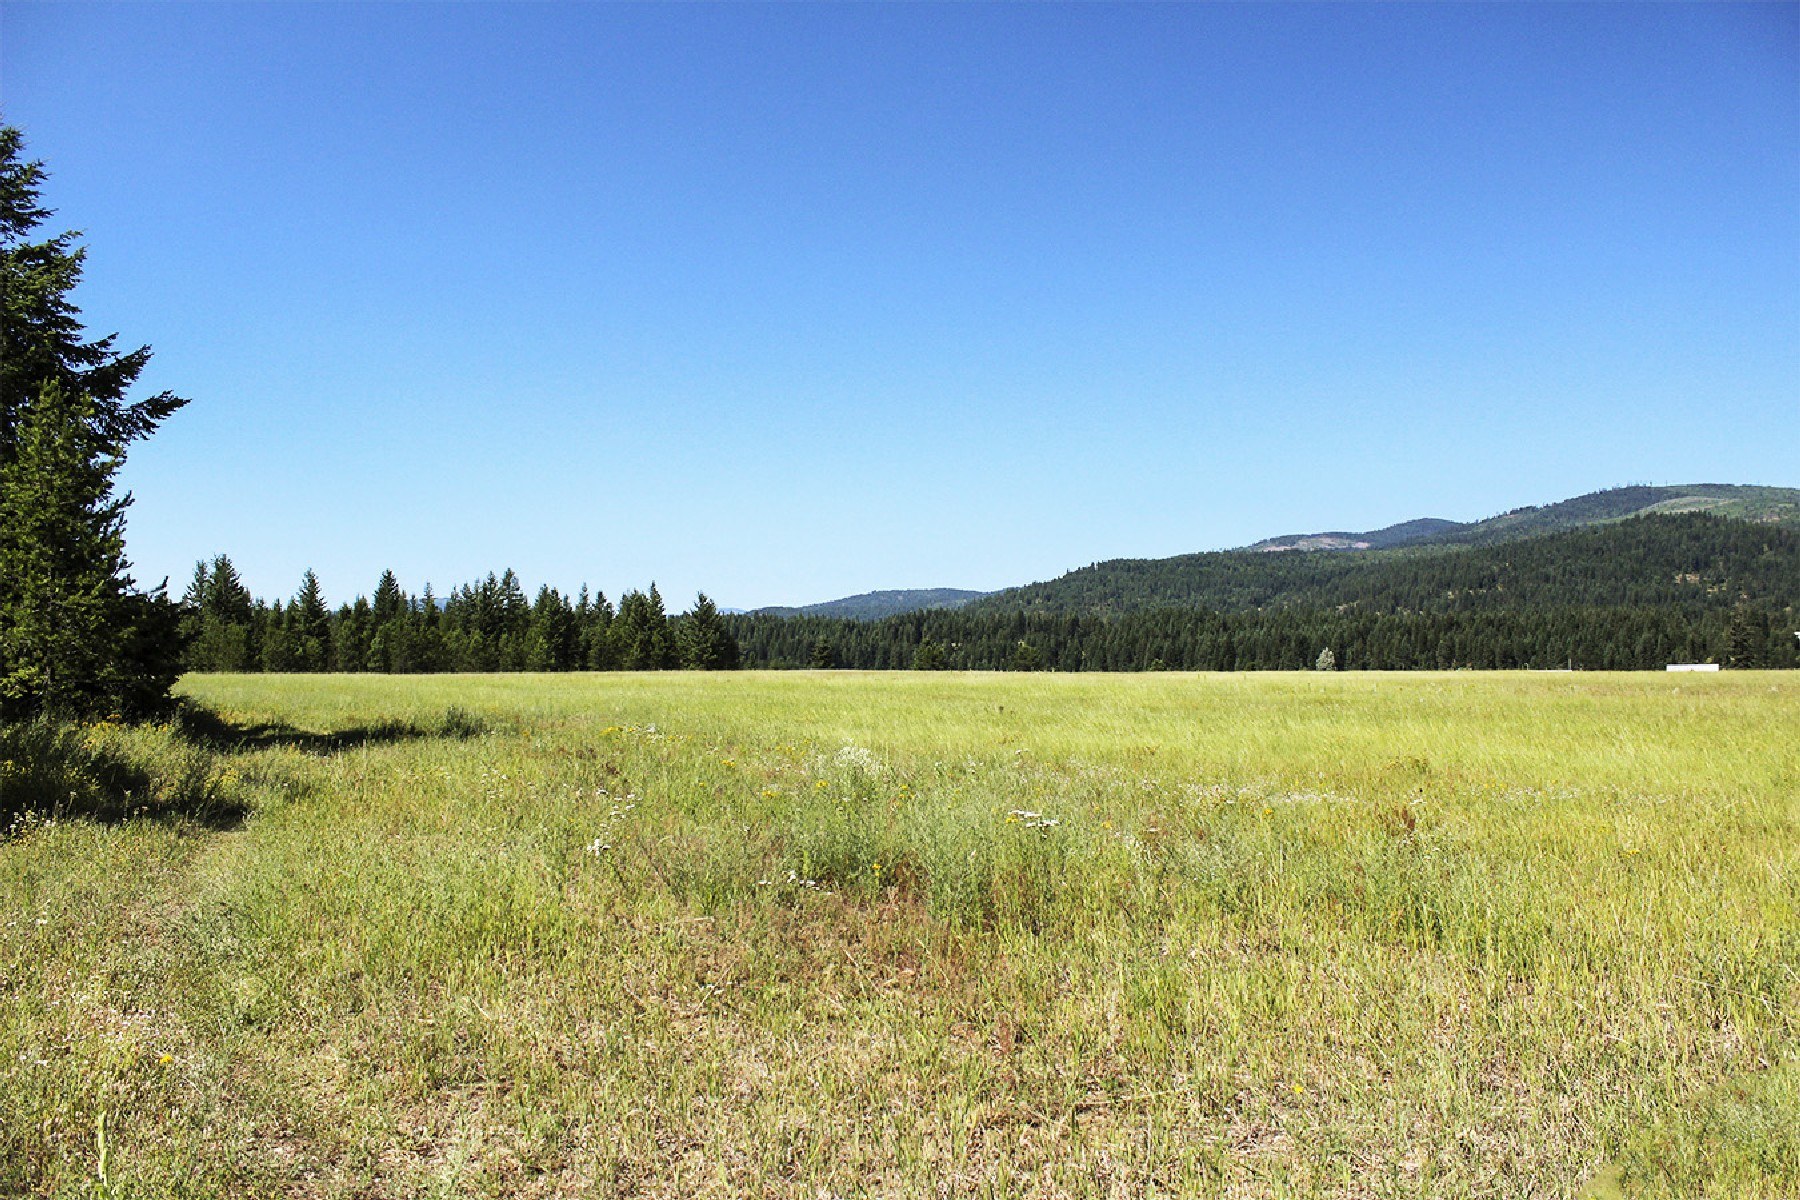 Land for Sale at 80 Beautiful Acres in Great Location! NNA Edgemere Cutoff Rd Priest River, Idaho 83856 United States